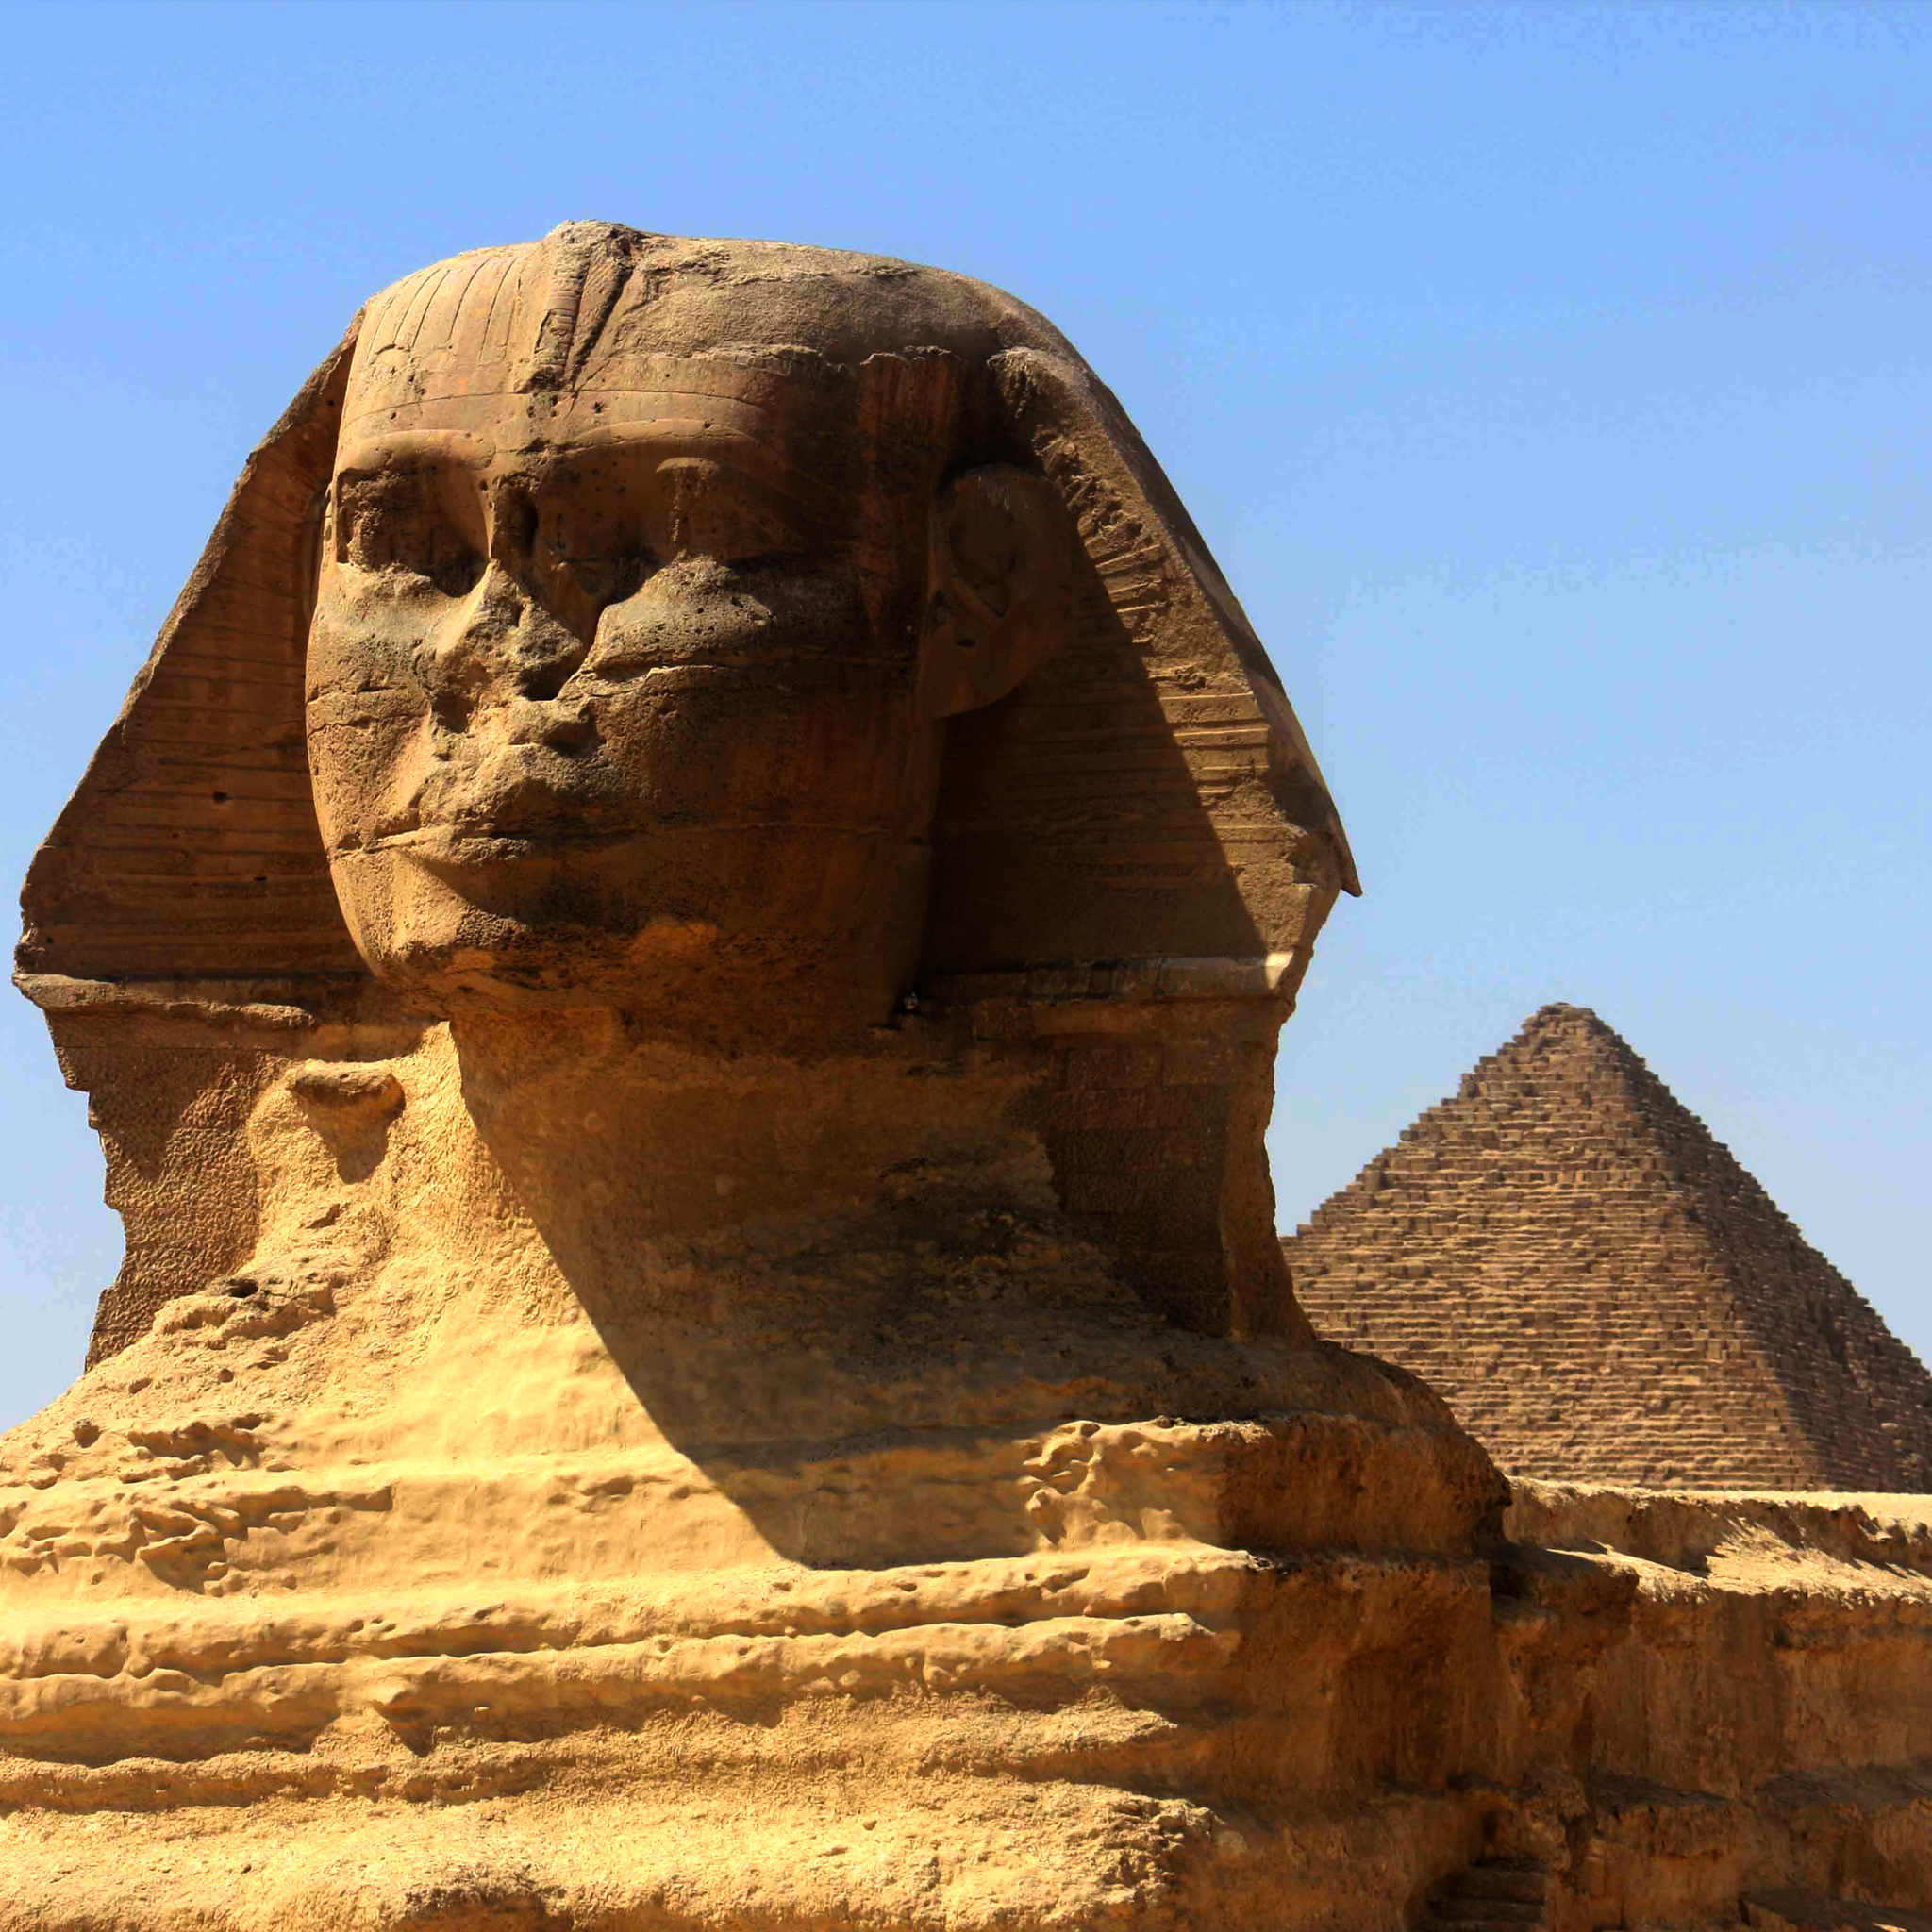 Egypte Sphynx 3Wallpapers iPad Retina Egypte Sphinx   iPad Retina